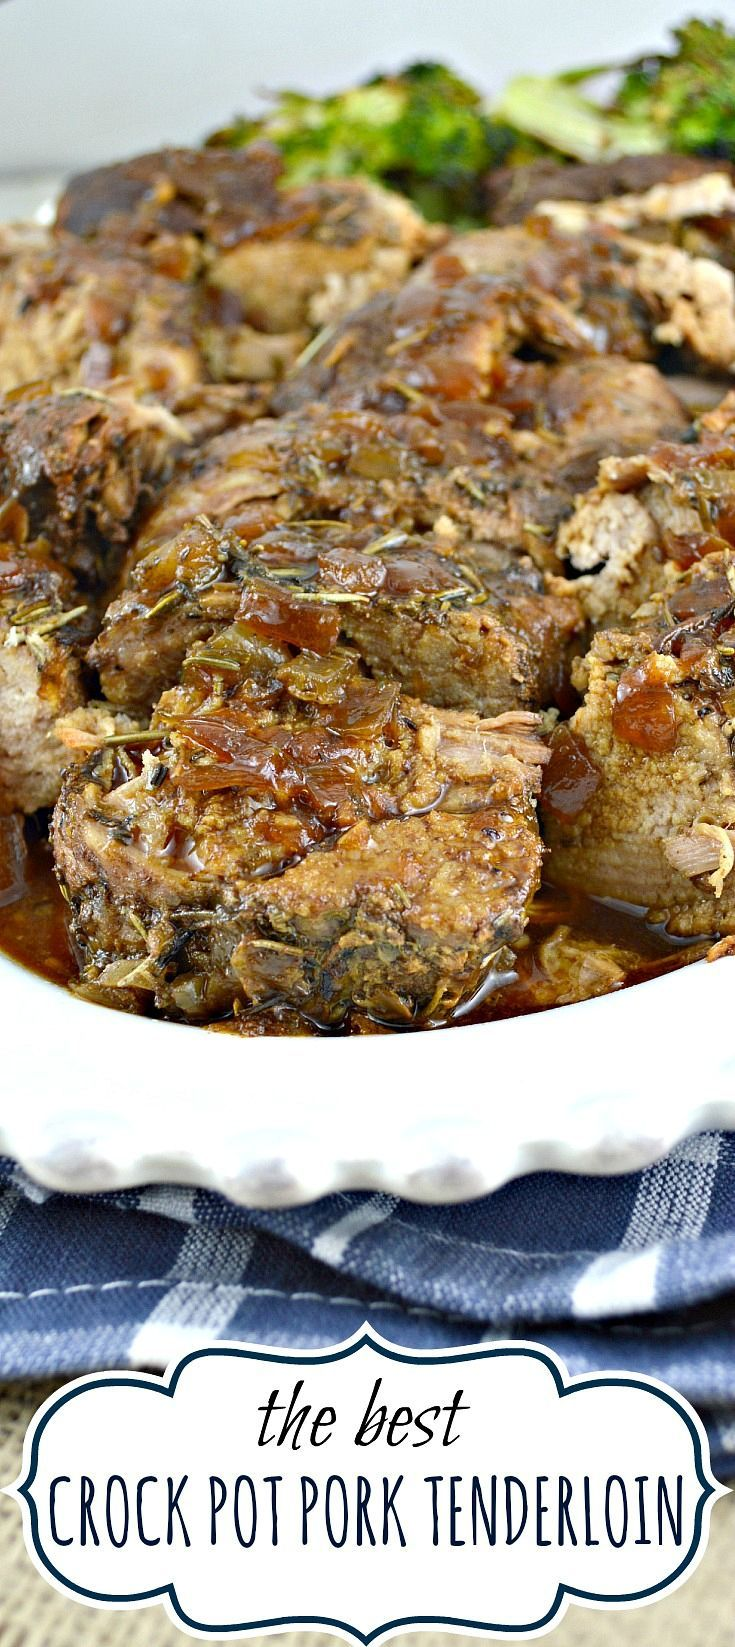 Crock pot pork tenderloin. This recipe makes an incredibly tender, moist,flavorful pork tenderloin with a fabulous pan sauce/gravy. All from scratch-no canned soup!  Order Zaycon Fresh here: https://www.zayconfresh.com/?utm_source=pinterest.com&utm_medium=zaycon&utm_term=8242015&utm_content=post&utm_campaign=139